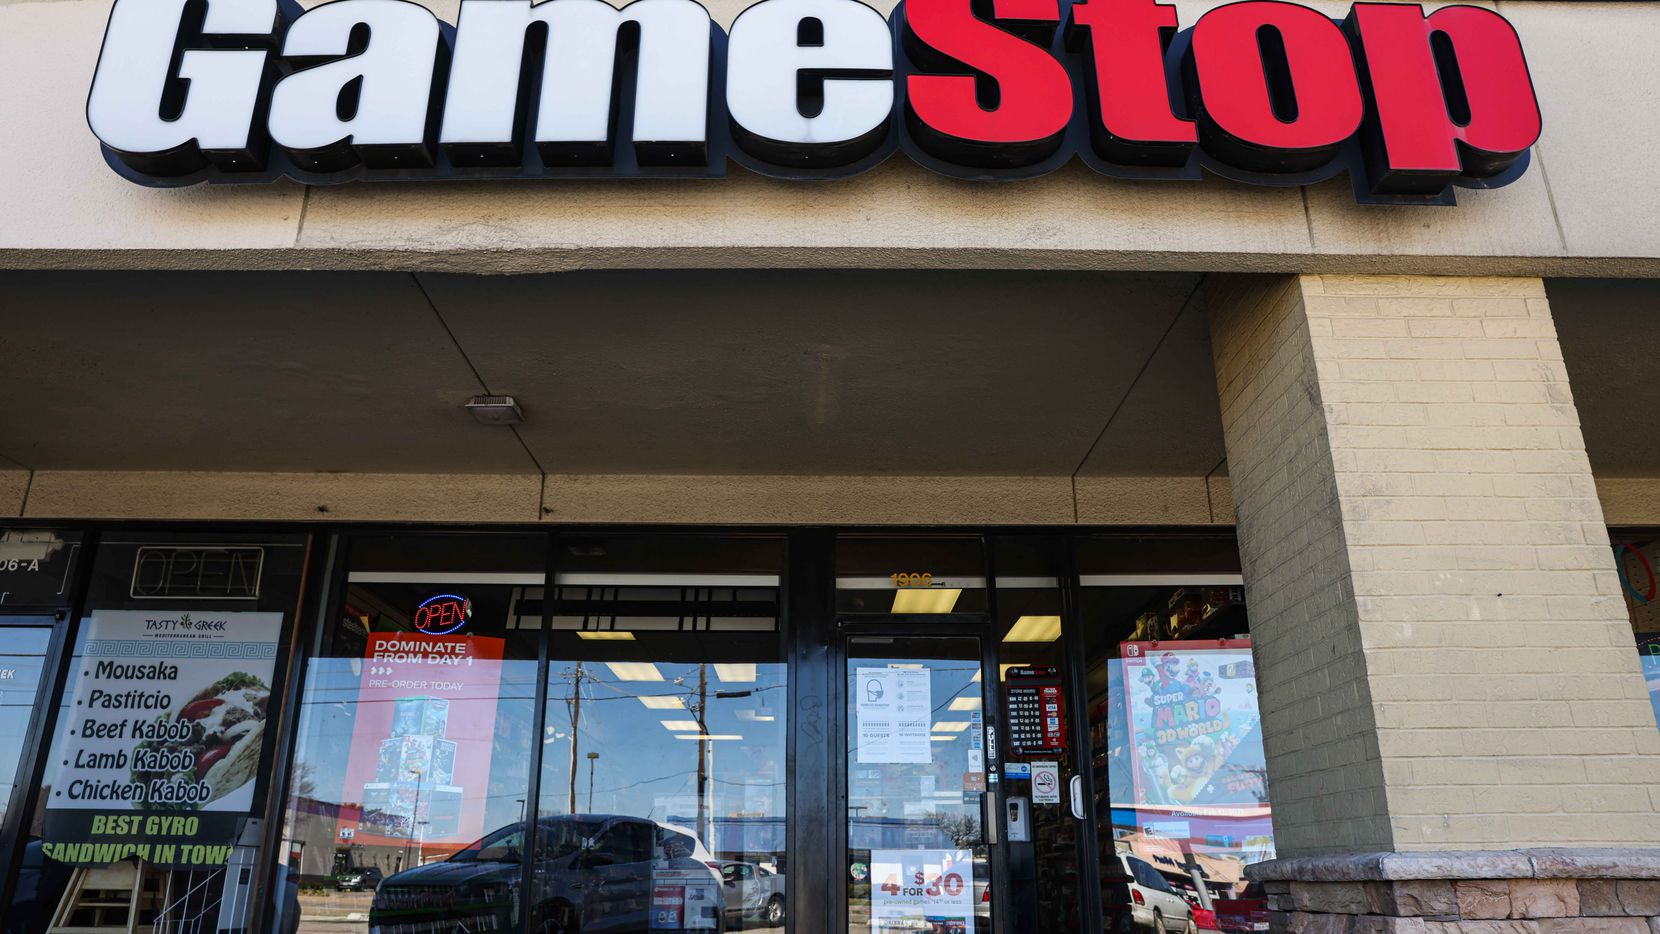 A GameStop at Carrollton Park in Carrollton is shown on Jan. 30.